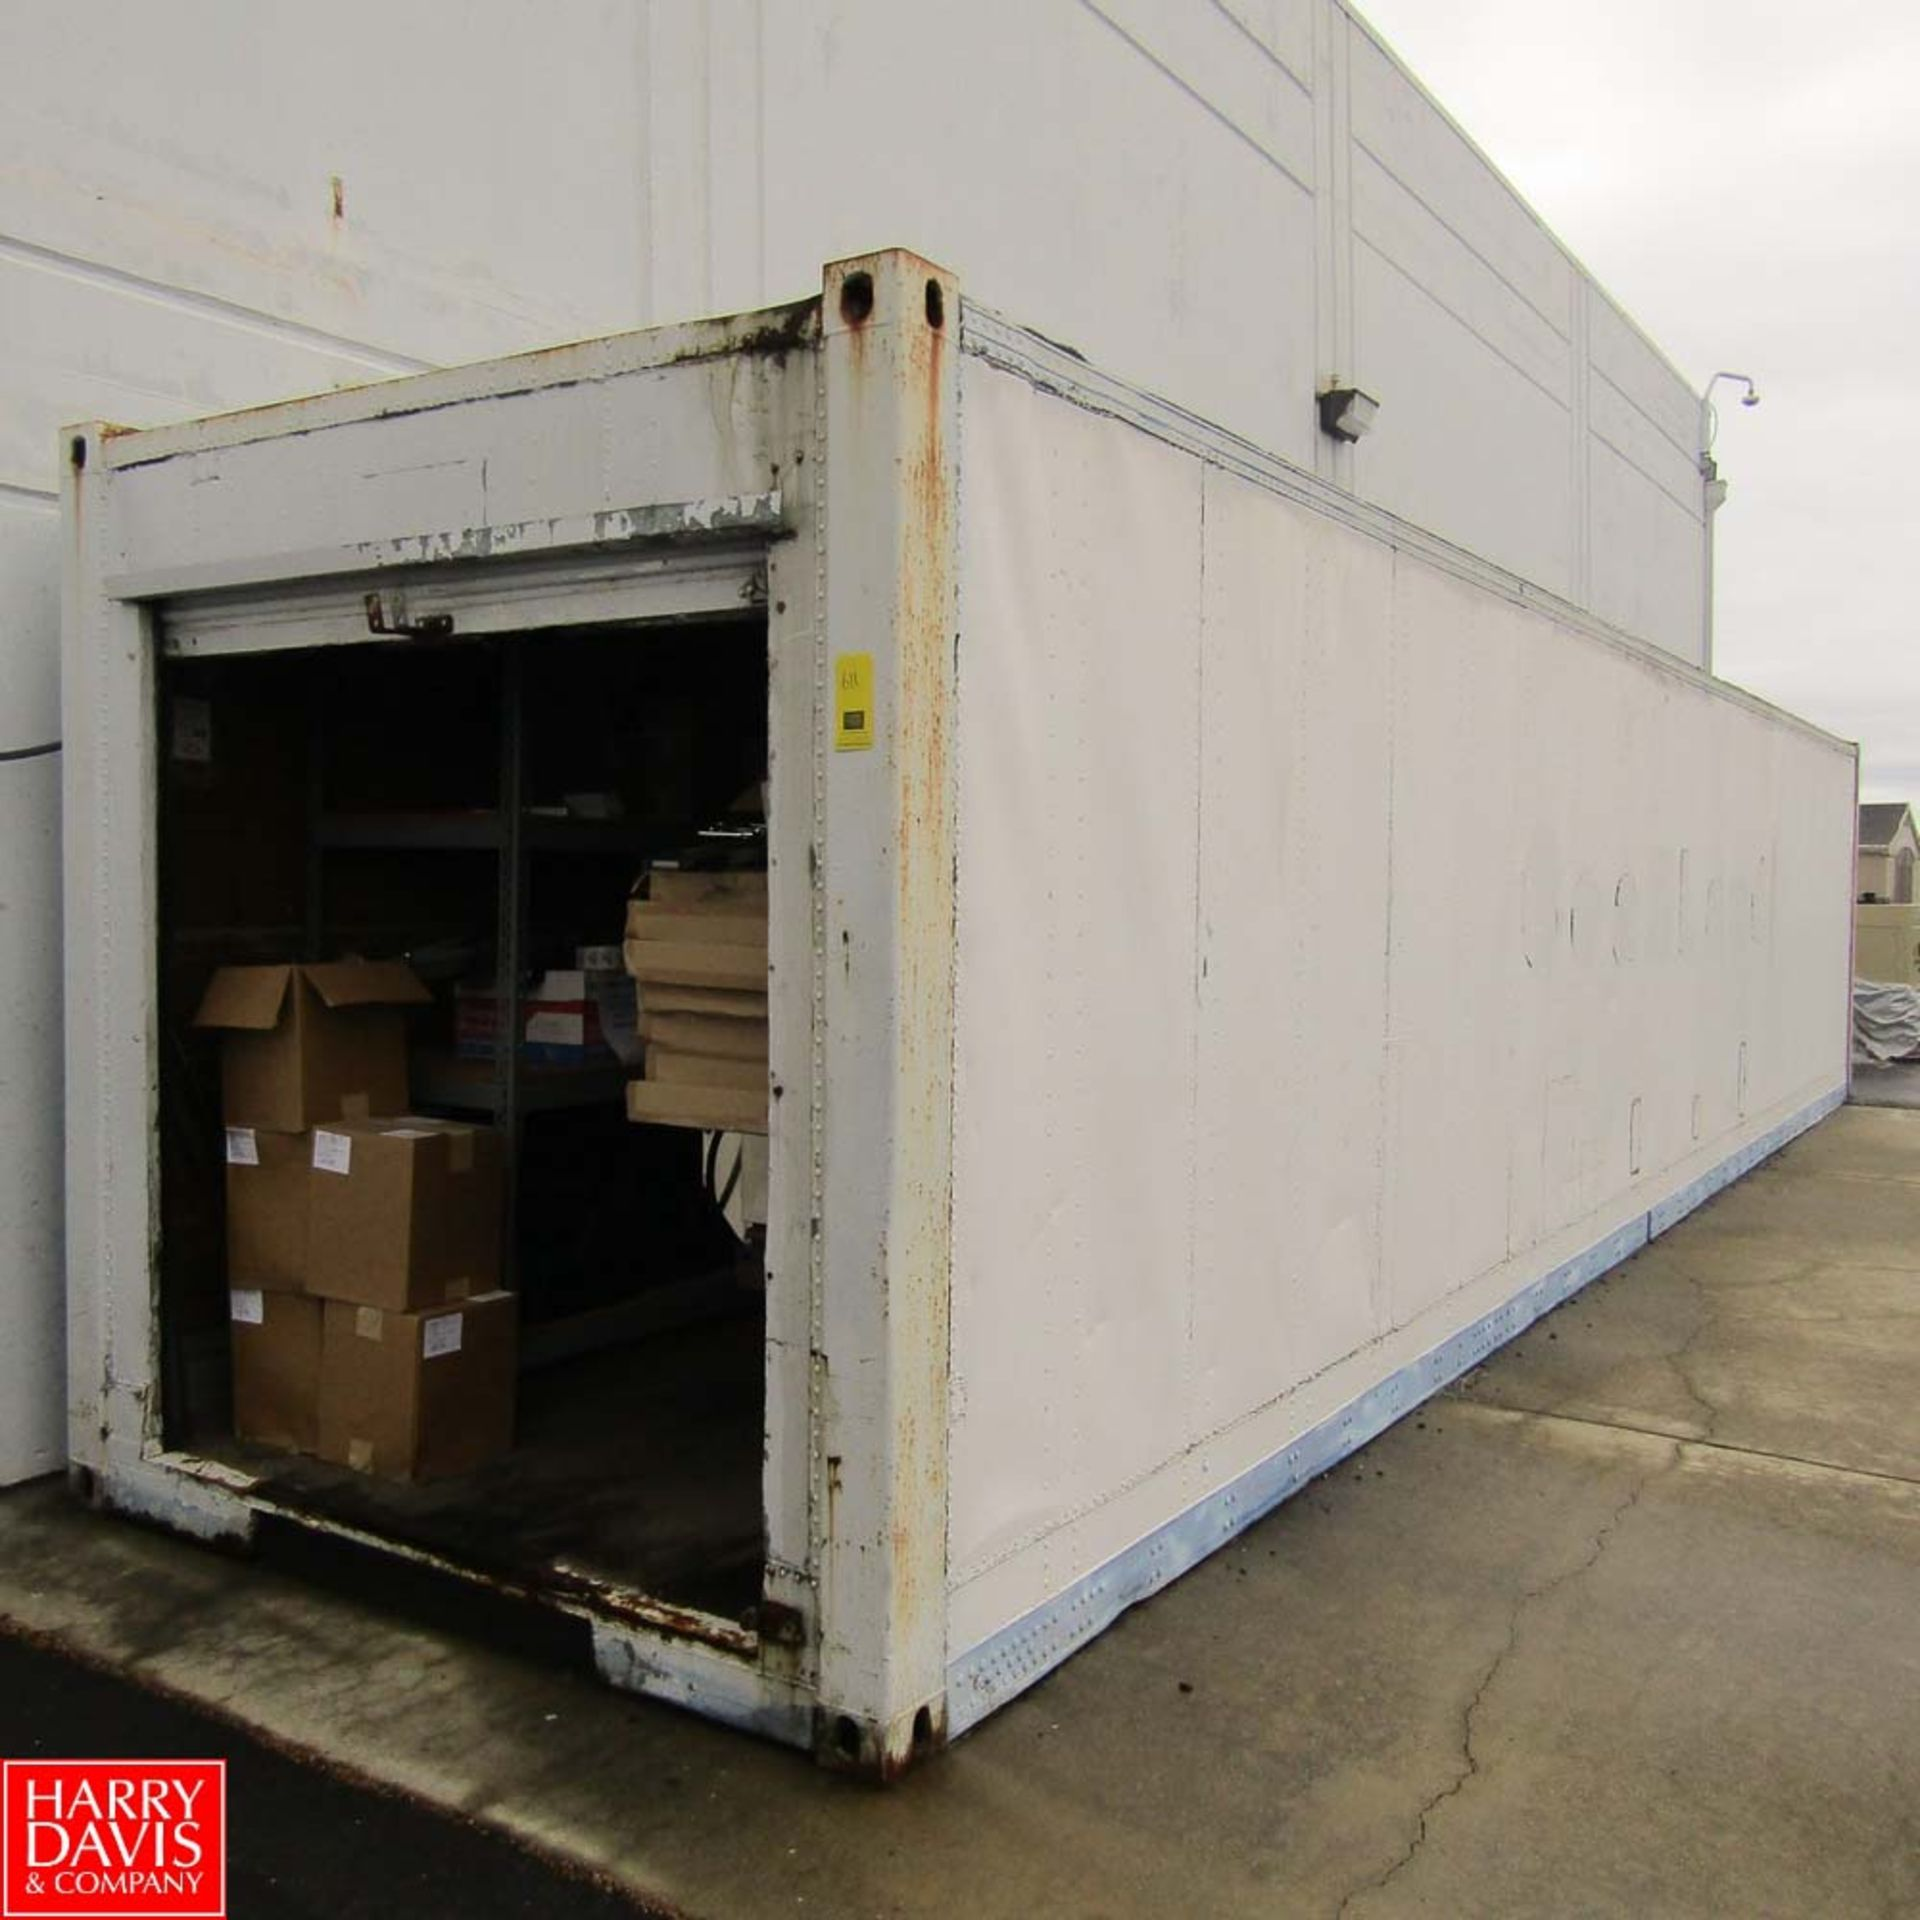 Lot 611 - 40' Shipping Container with Contents Including: Projector Screens, Grills, Tables, Water Coolers